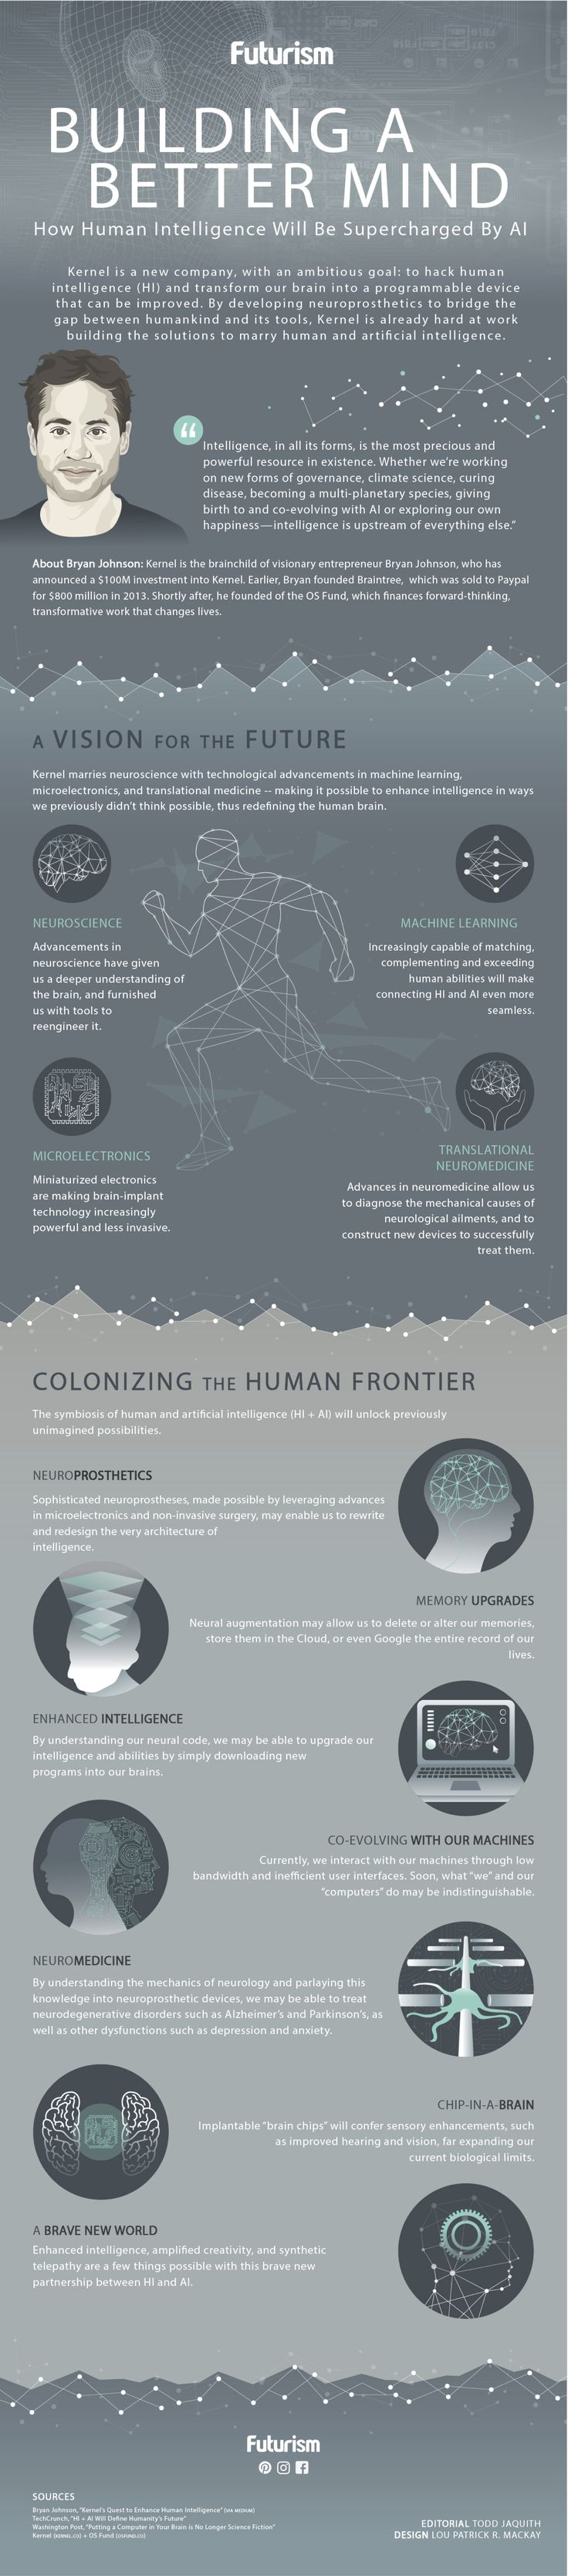 Reprogramming the Human Mind: Here's How We'll Make Humanity 2.0 [INFOGRAPHIC]   Welcome to the next stage of human evolution. https://futurism.com/images/reprogramming-the-human-mind-heres-how-well-make-humanity-2-0-infographic/?utm_campaign=coschedule&utm_source=pinterest&utm_medium=Futurism&utm_content=Reprogramming%20the%20Human%20Mind%3A%20Here%27s%20How%20We%27ll%20Make%20Humanity%202.0%20%5BINFOGRAPHIC%5D